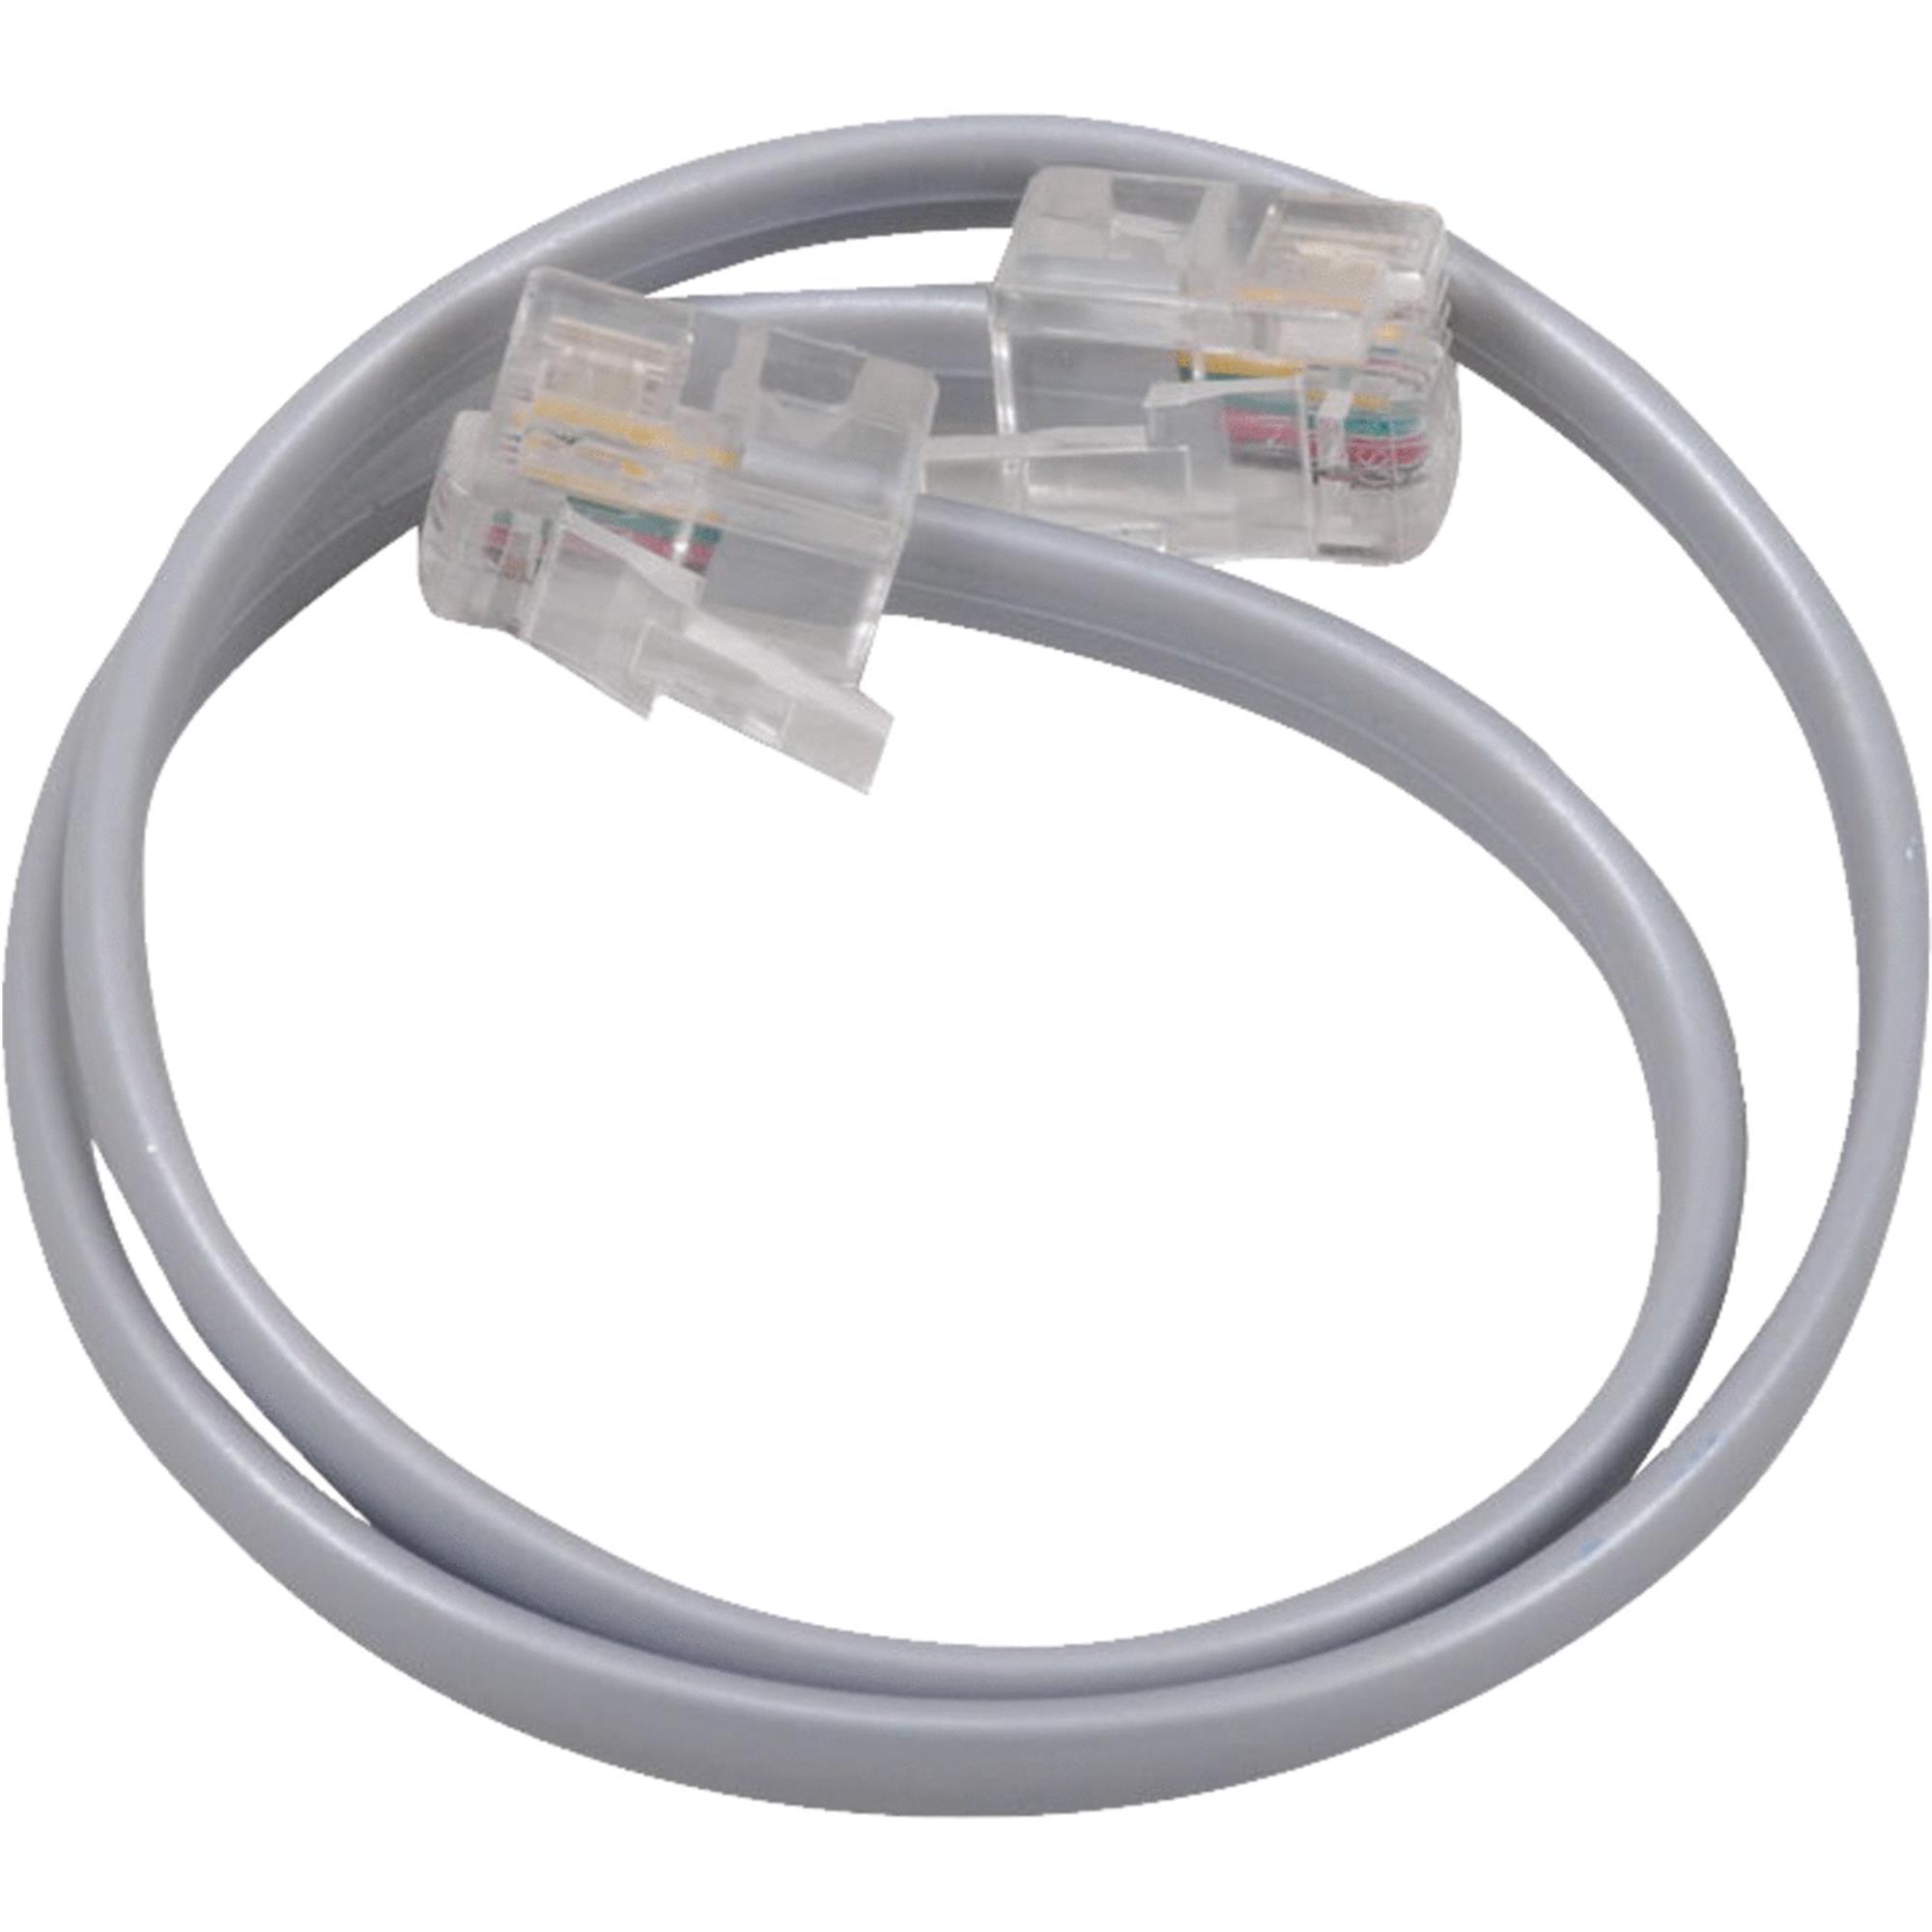 AUDIOVOX Phone Line Cord, Silver, 12-In. TP130R